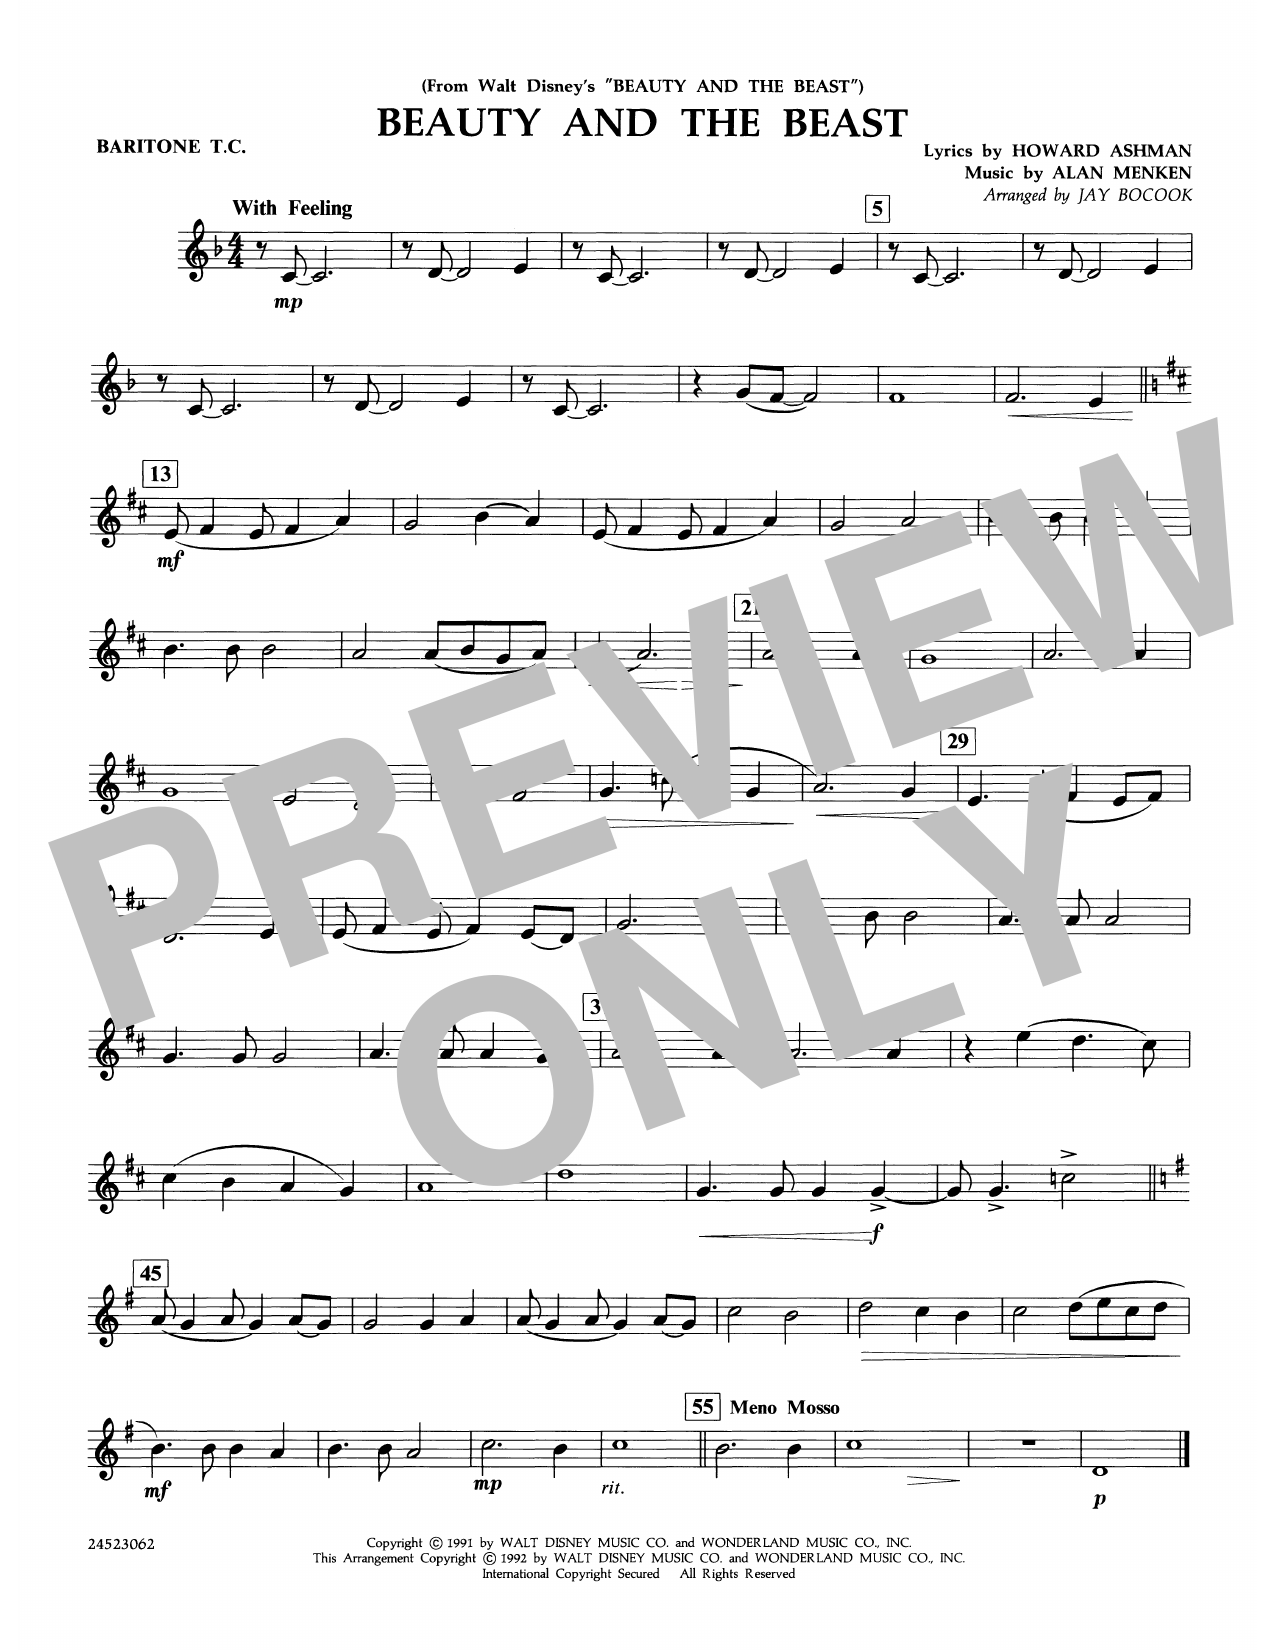 Beauty and the Beast - Baritone T.C. Sheet Music